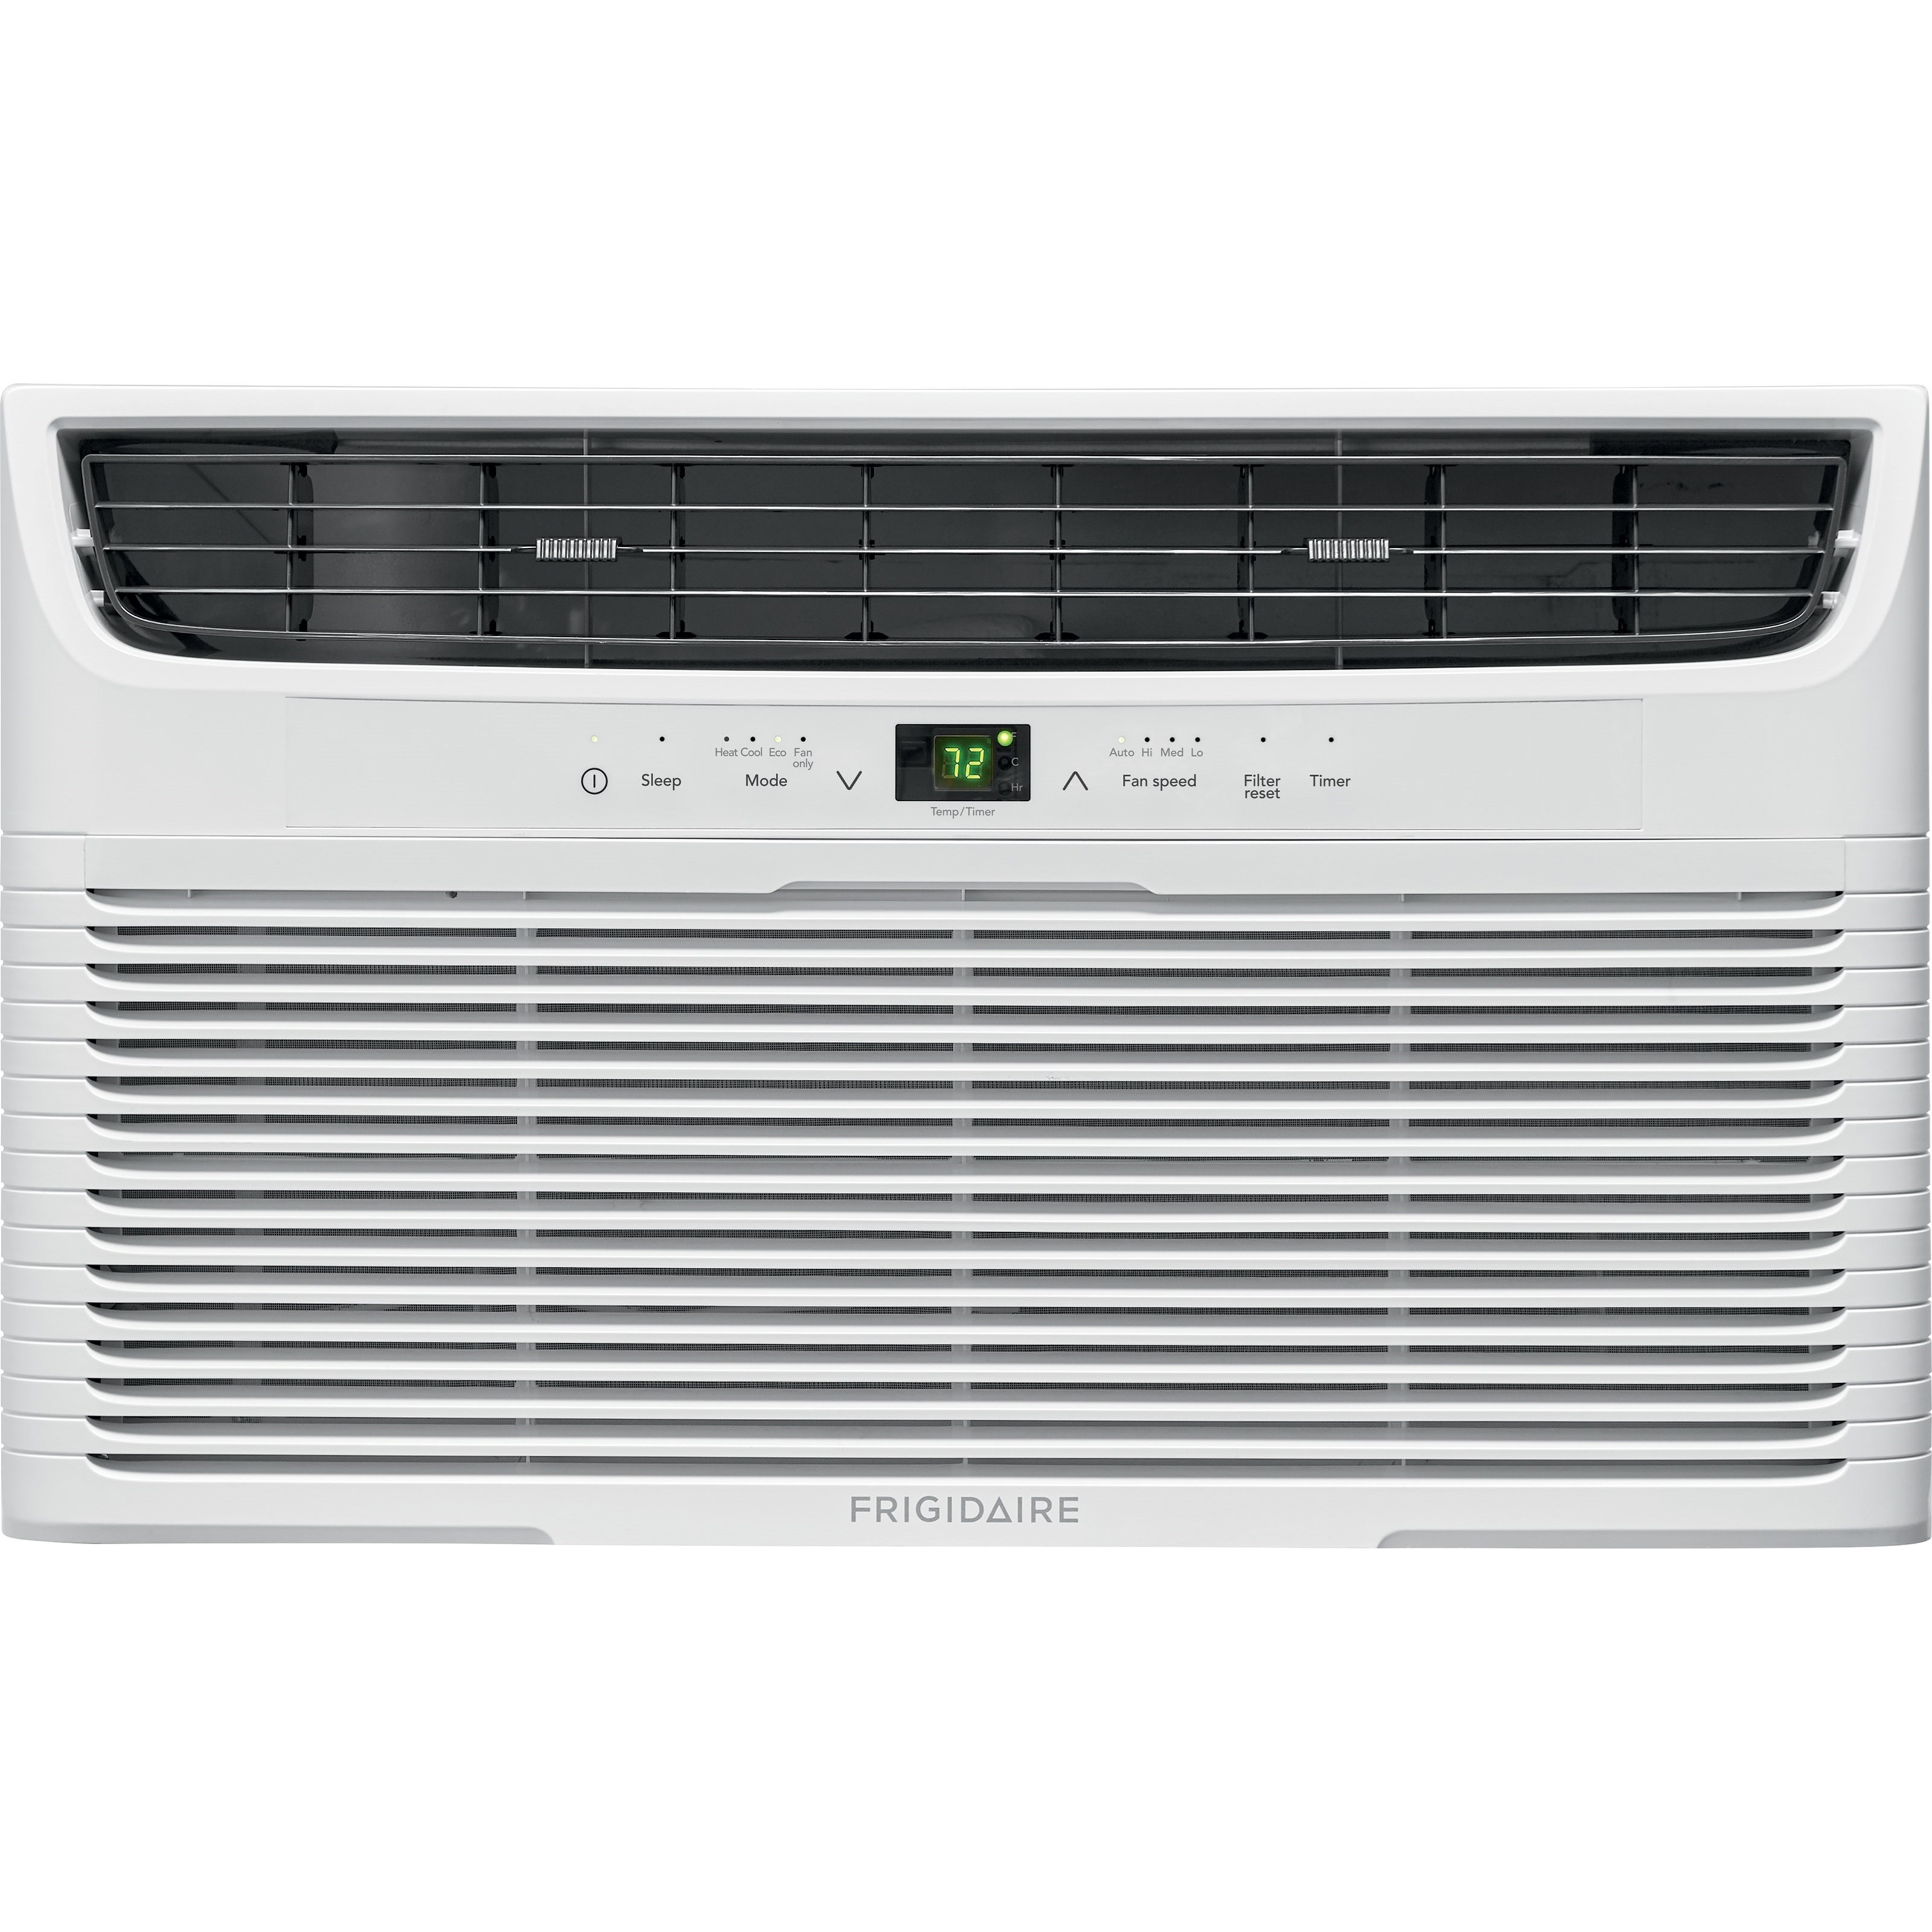 Air Conditioners 10,000 BTU Built-In Room Air Conditioner by Frigidaire at Fisher Home Furnishings